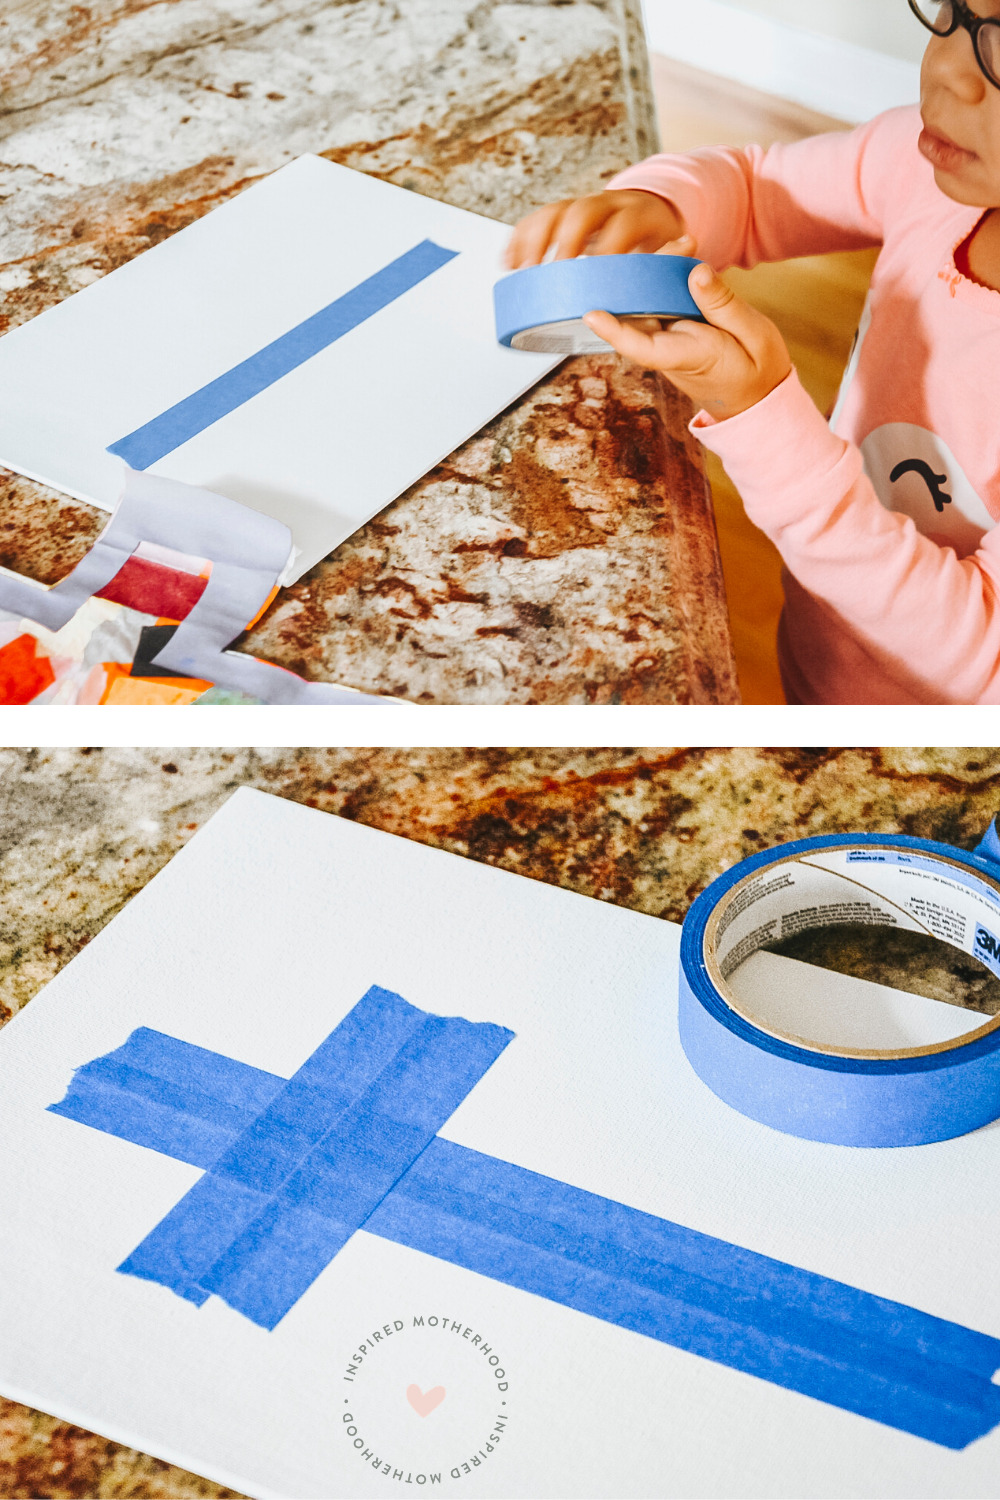 Use painter's tape to make an easy cross craft on canvas! Your kids will have a blast painting it. Even a toddler can do it!